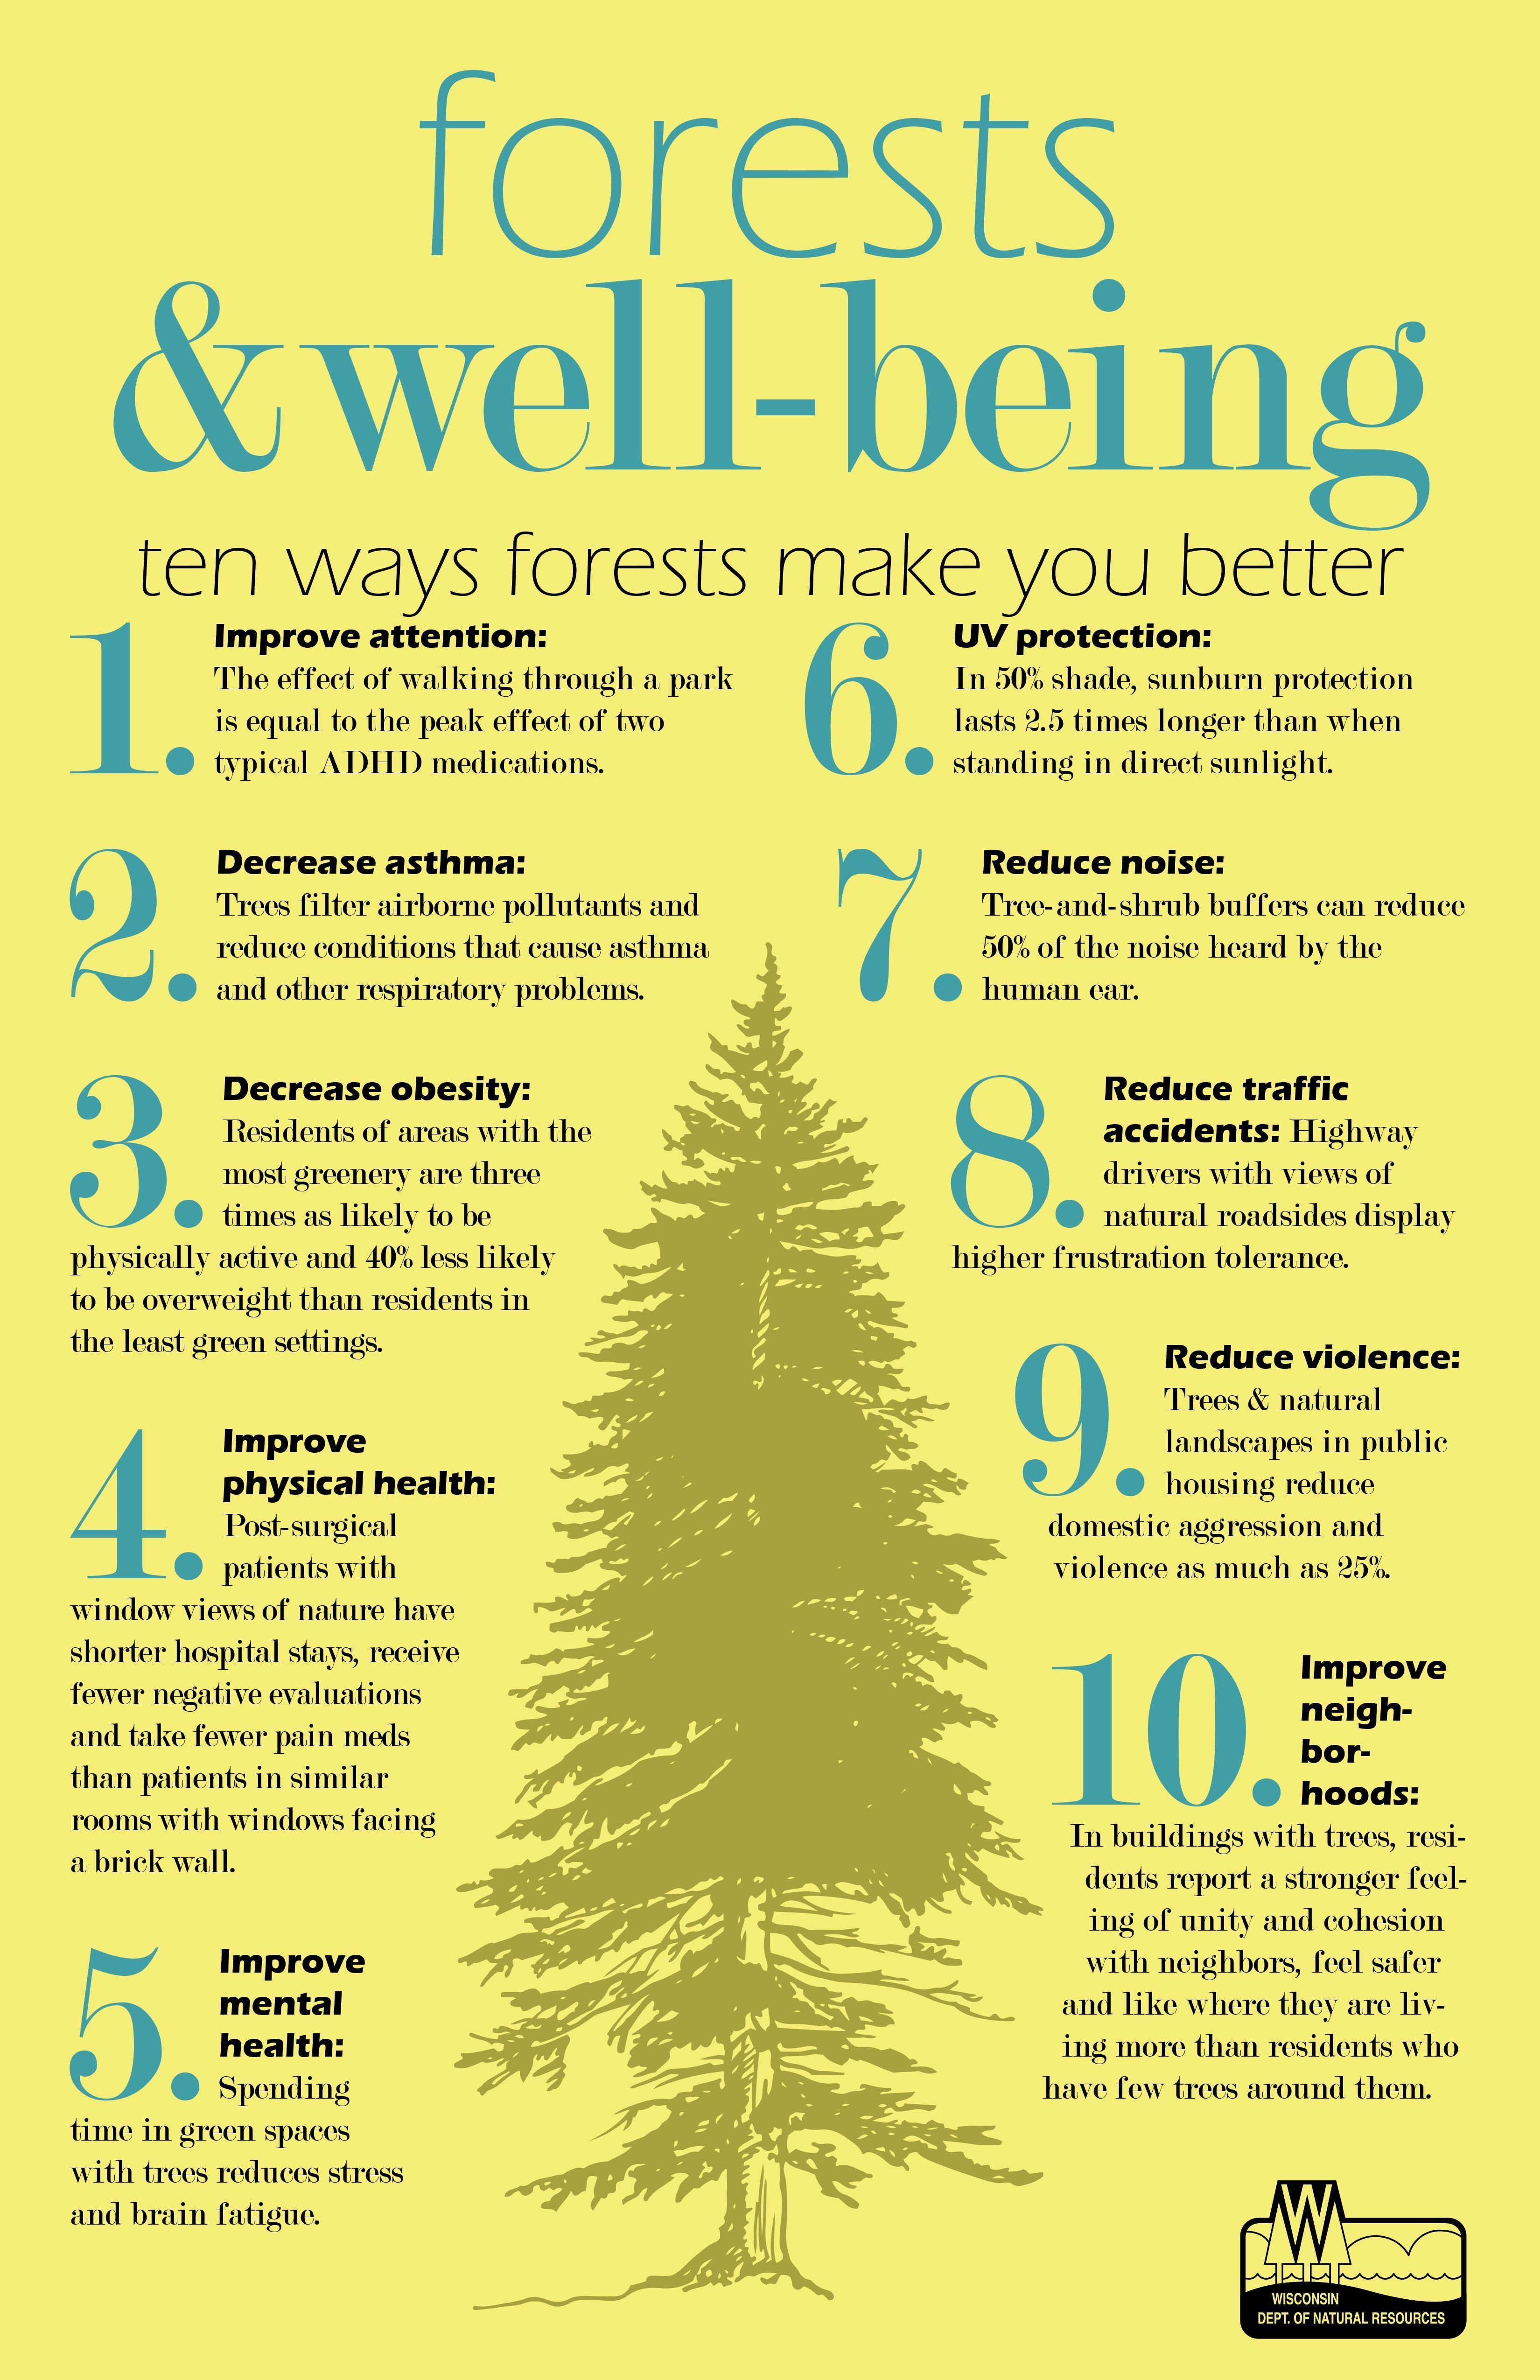 10 ways trees benefit our communities and improve our